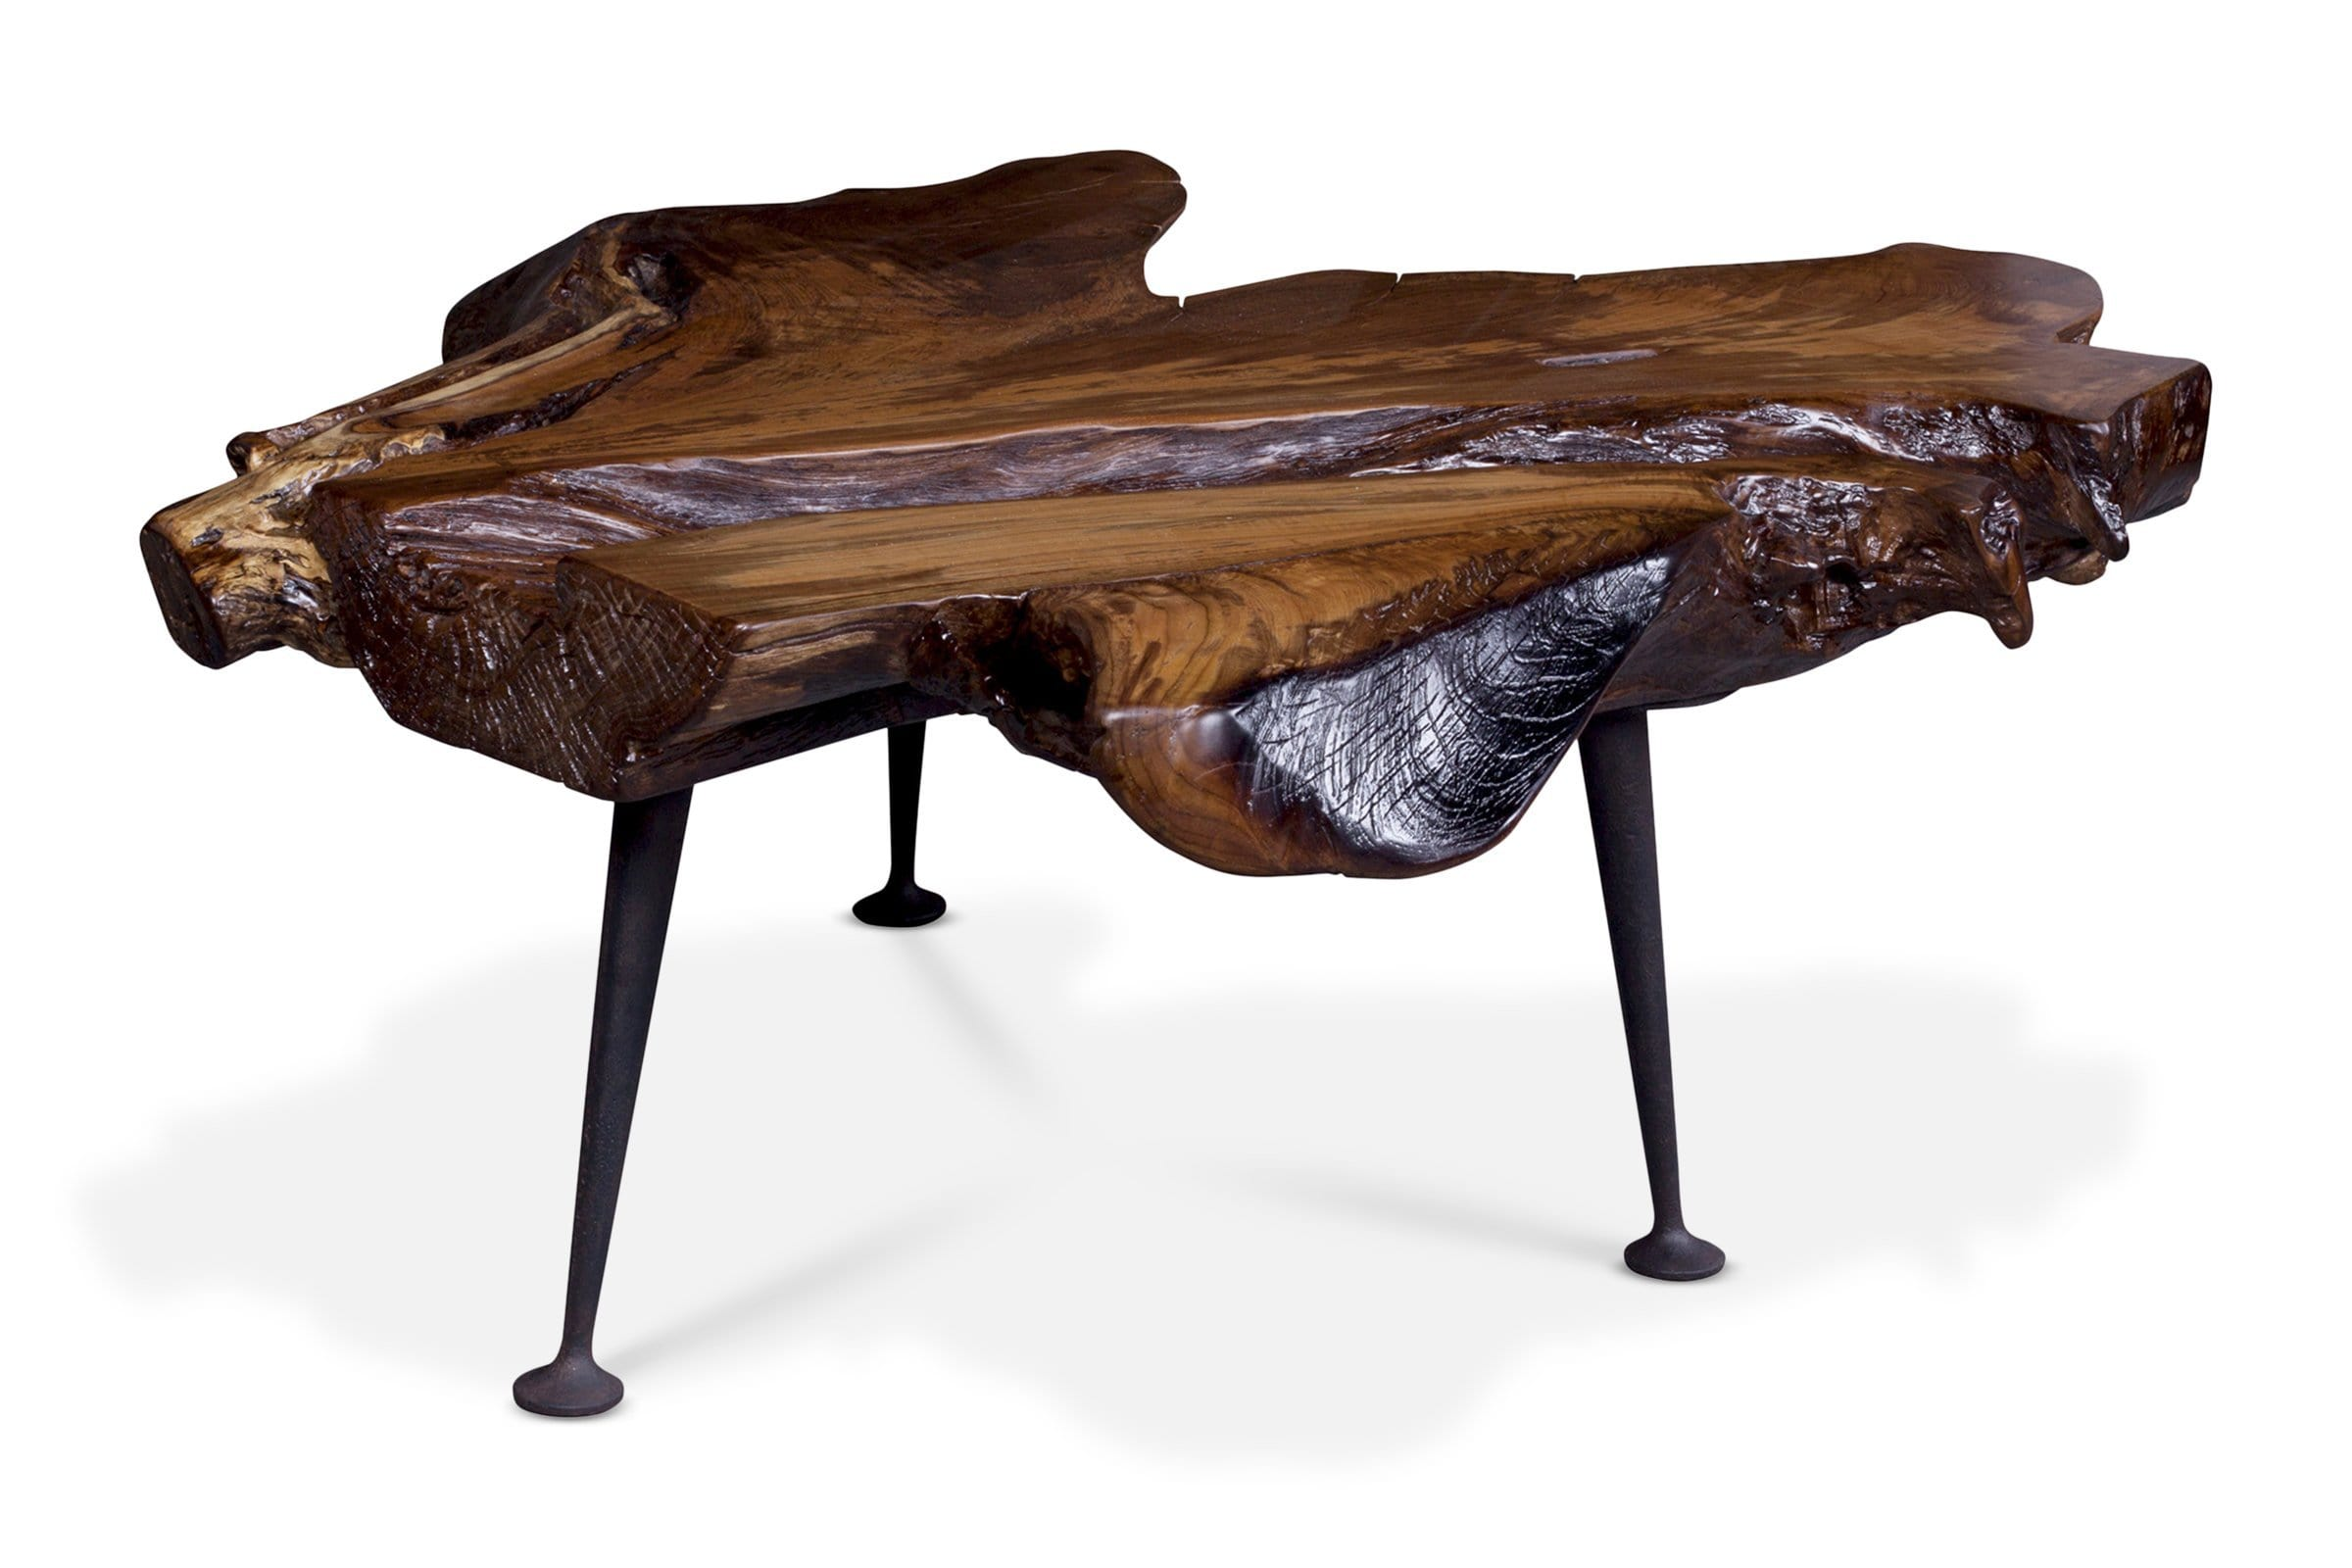 Vitus Coffee Table - Natural Teak Wood Top w/ Iron Base - Living Room Furniture sold by Apt2B